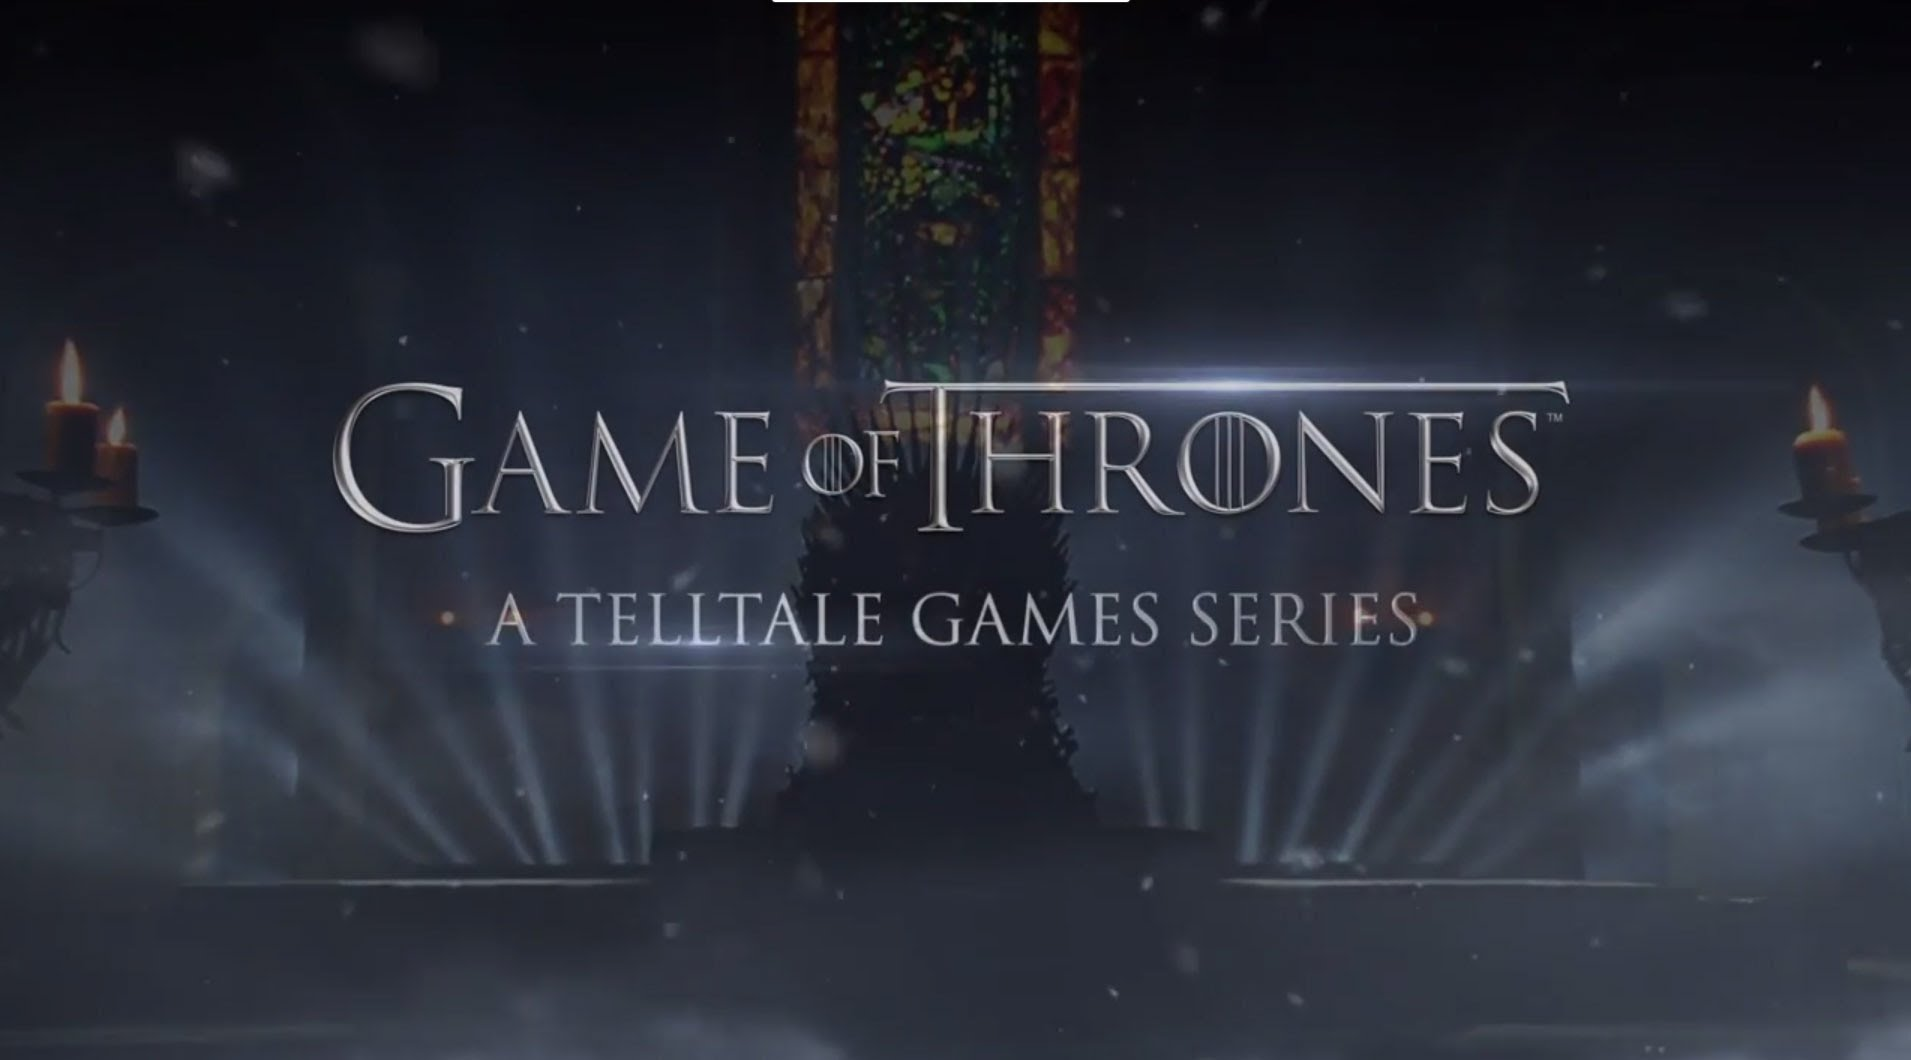 Game of throes a telltale games series